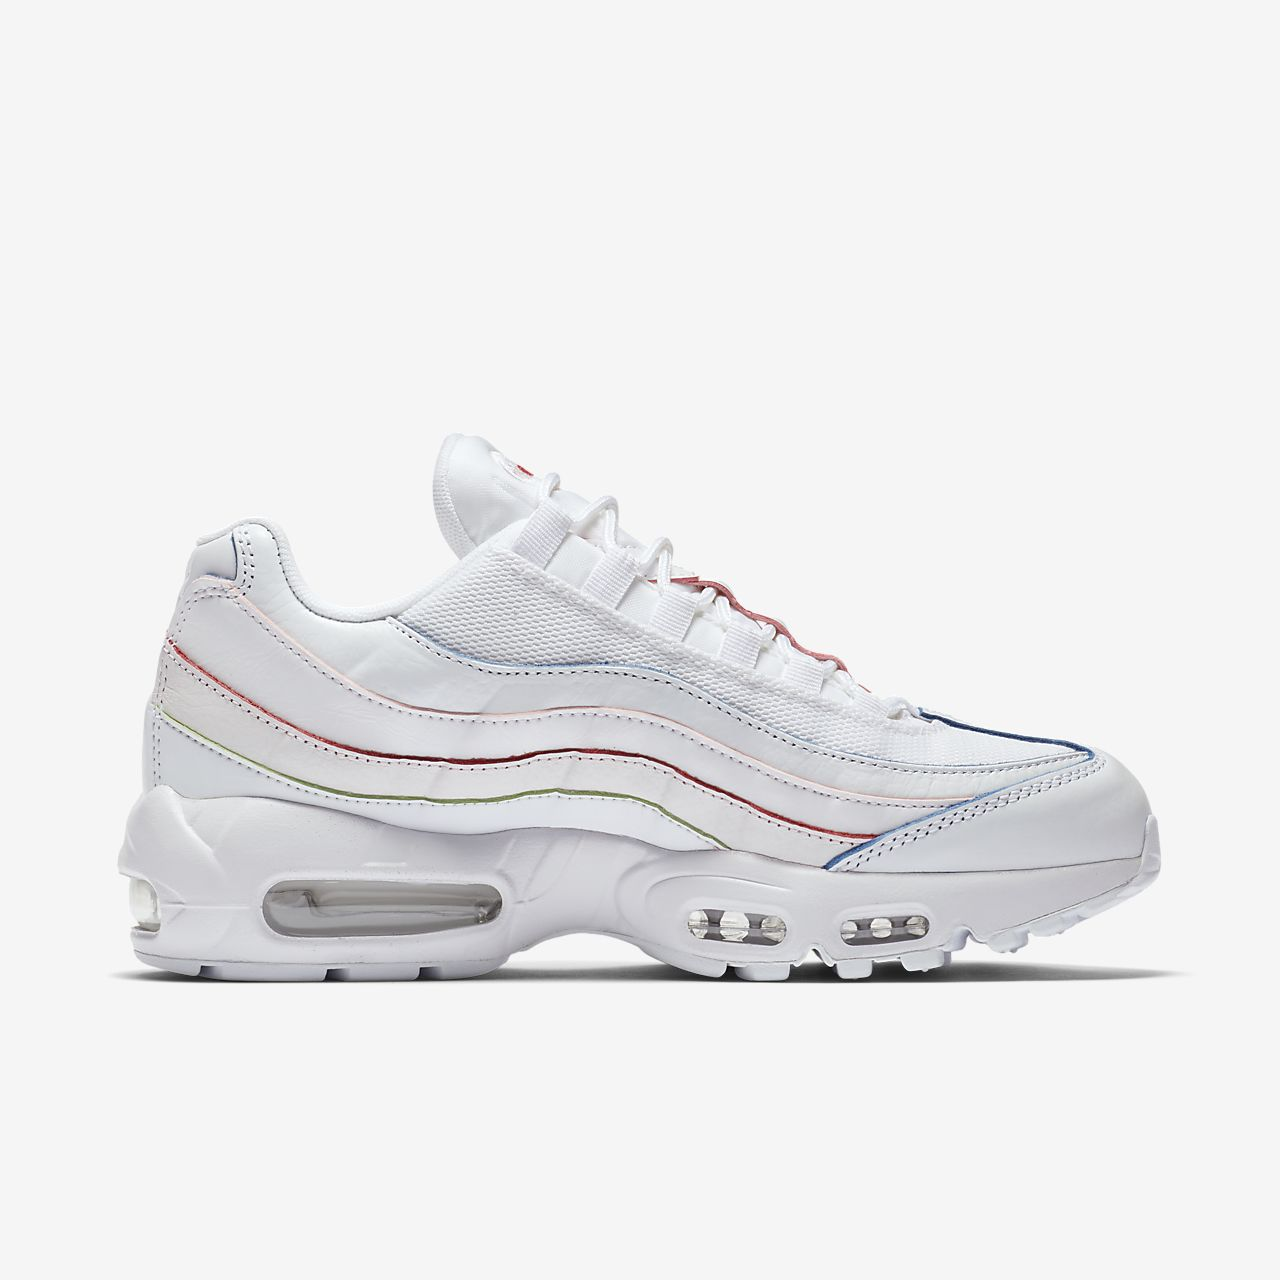 NIKE WMNS AIR MAX 95 SE outlet low price cheap sale fashionable really cheap price bJr8sfIZd